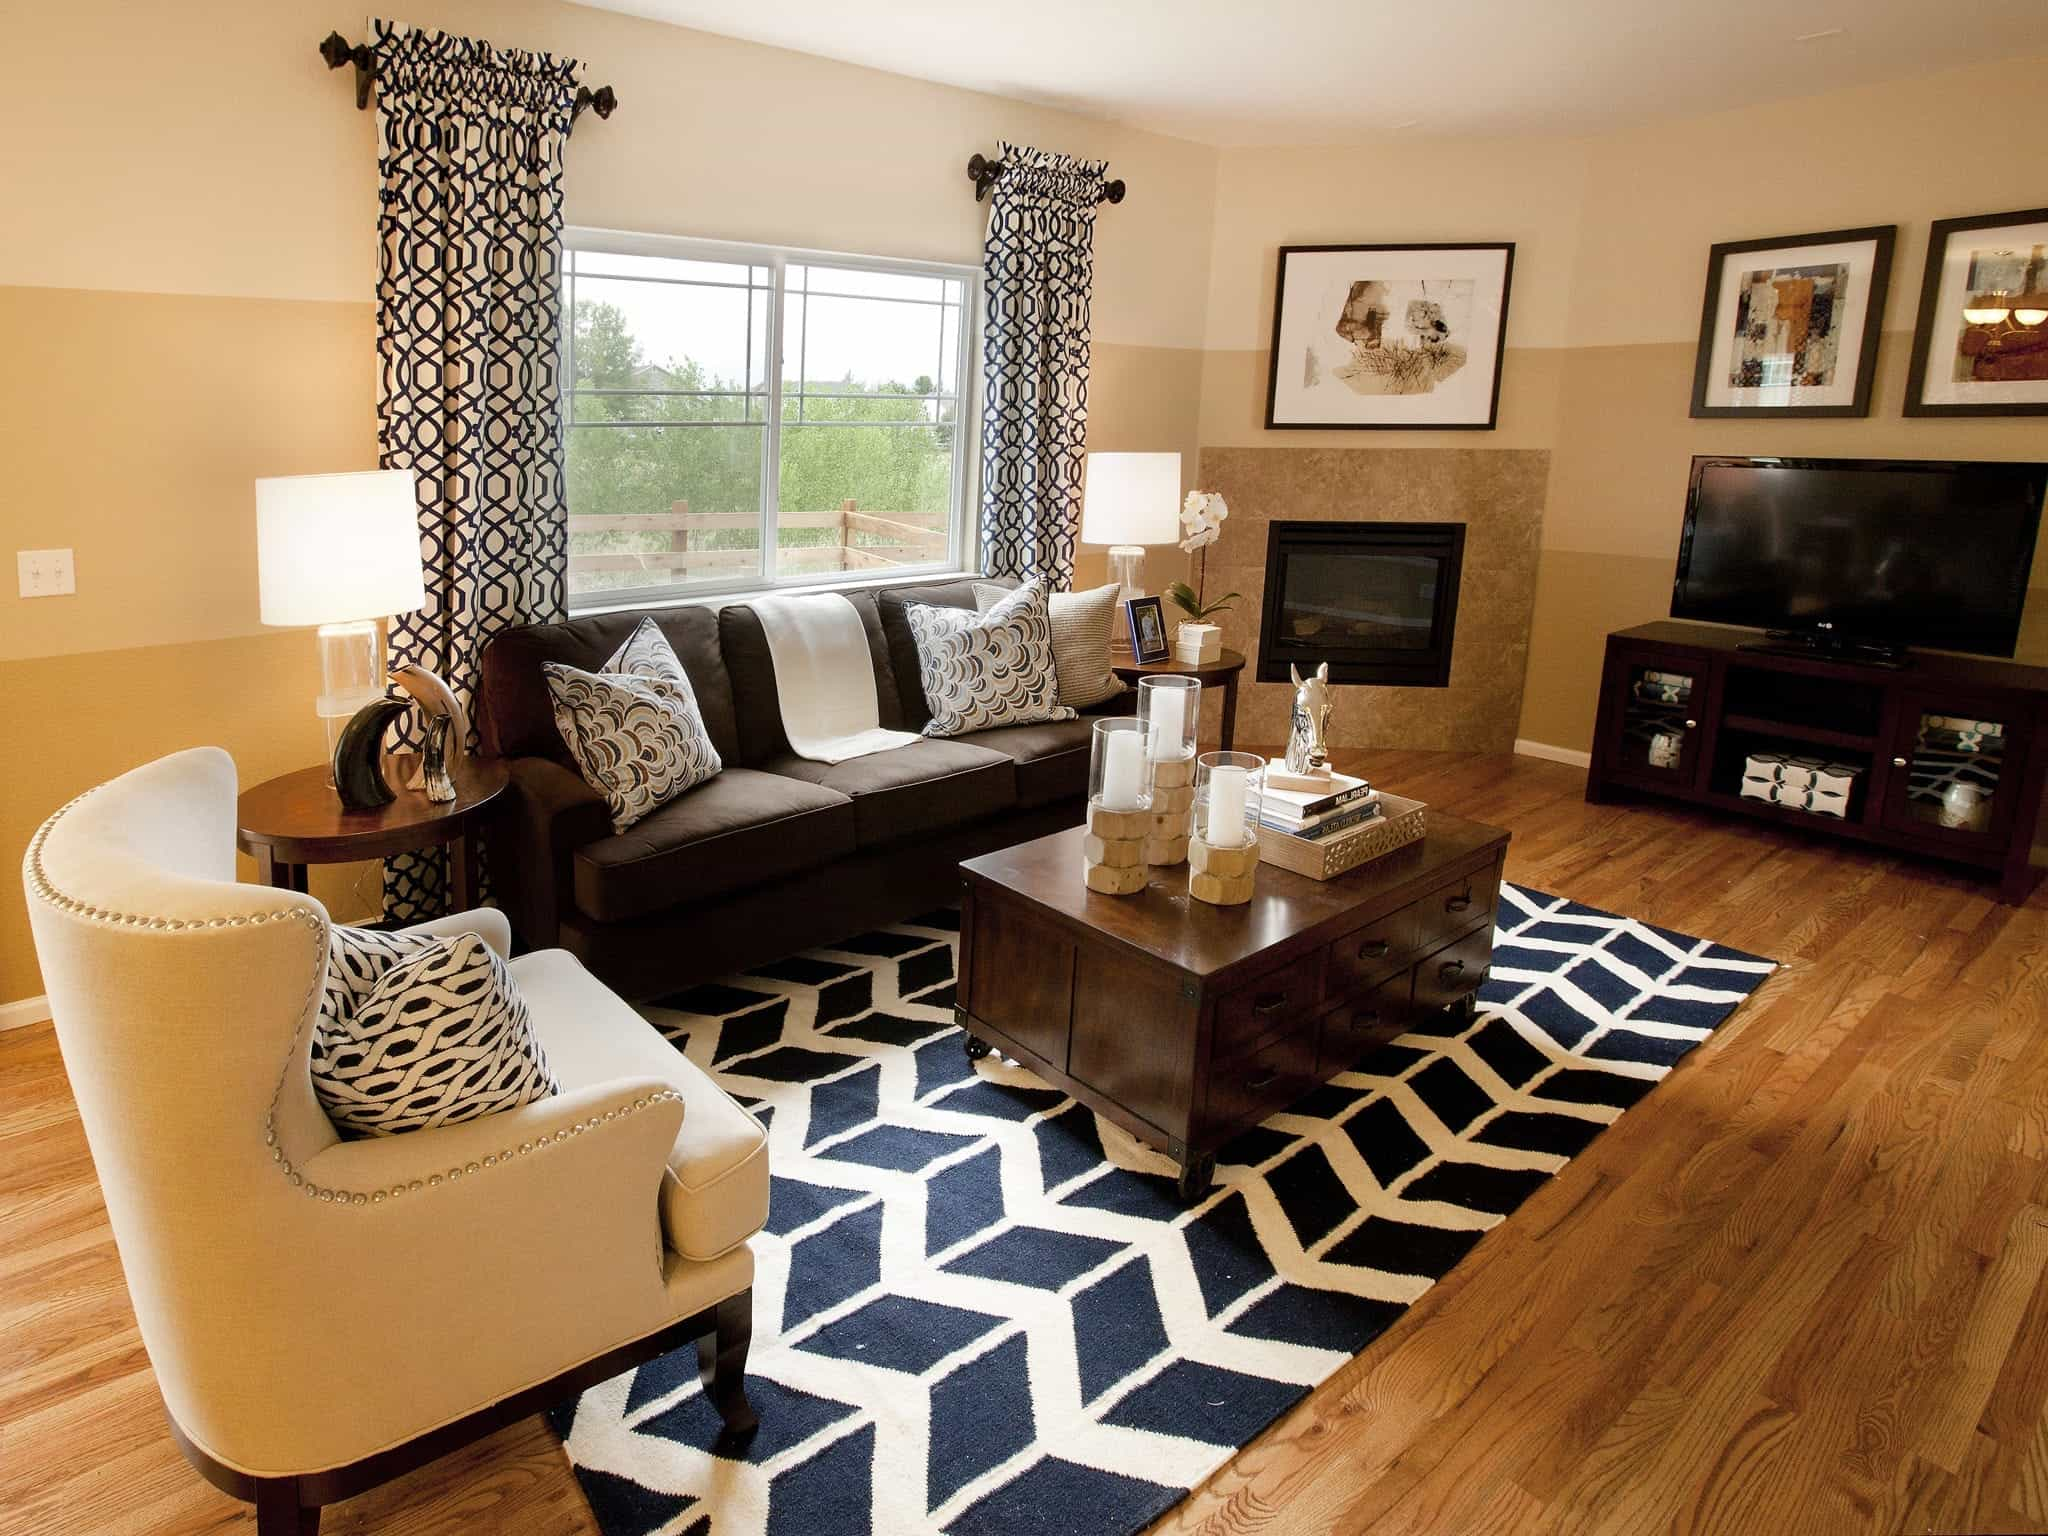 Contemporary Living Room Features A Corner Fireplace And Graphic Print Drapes And Rug (Image 6 of 13)